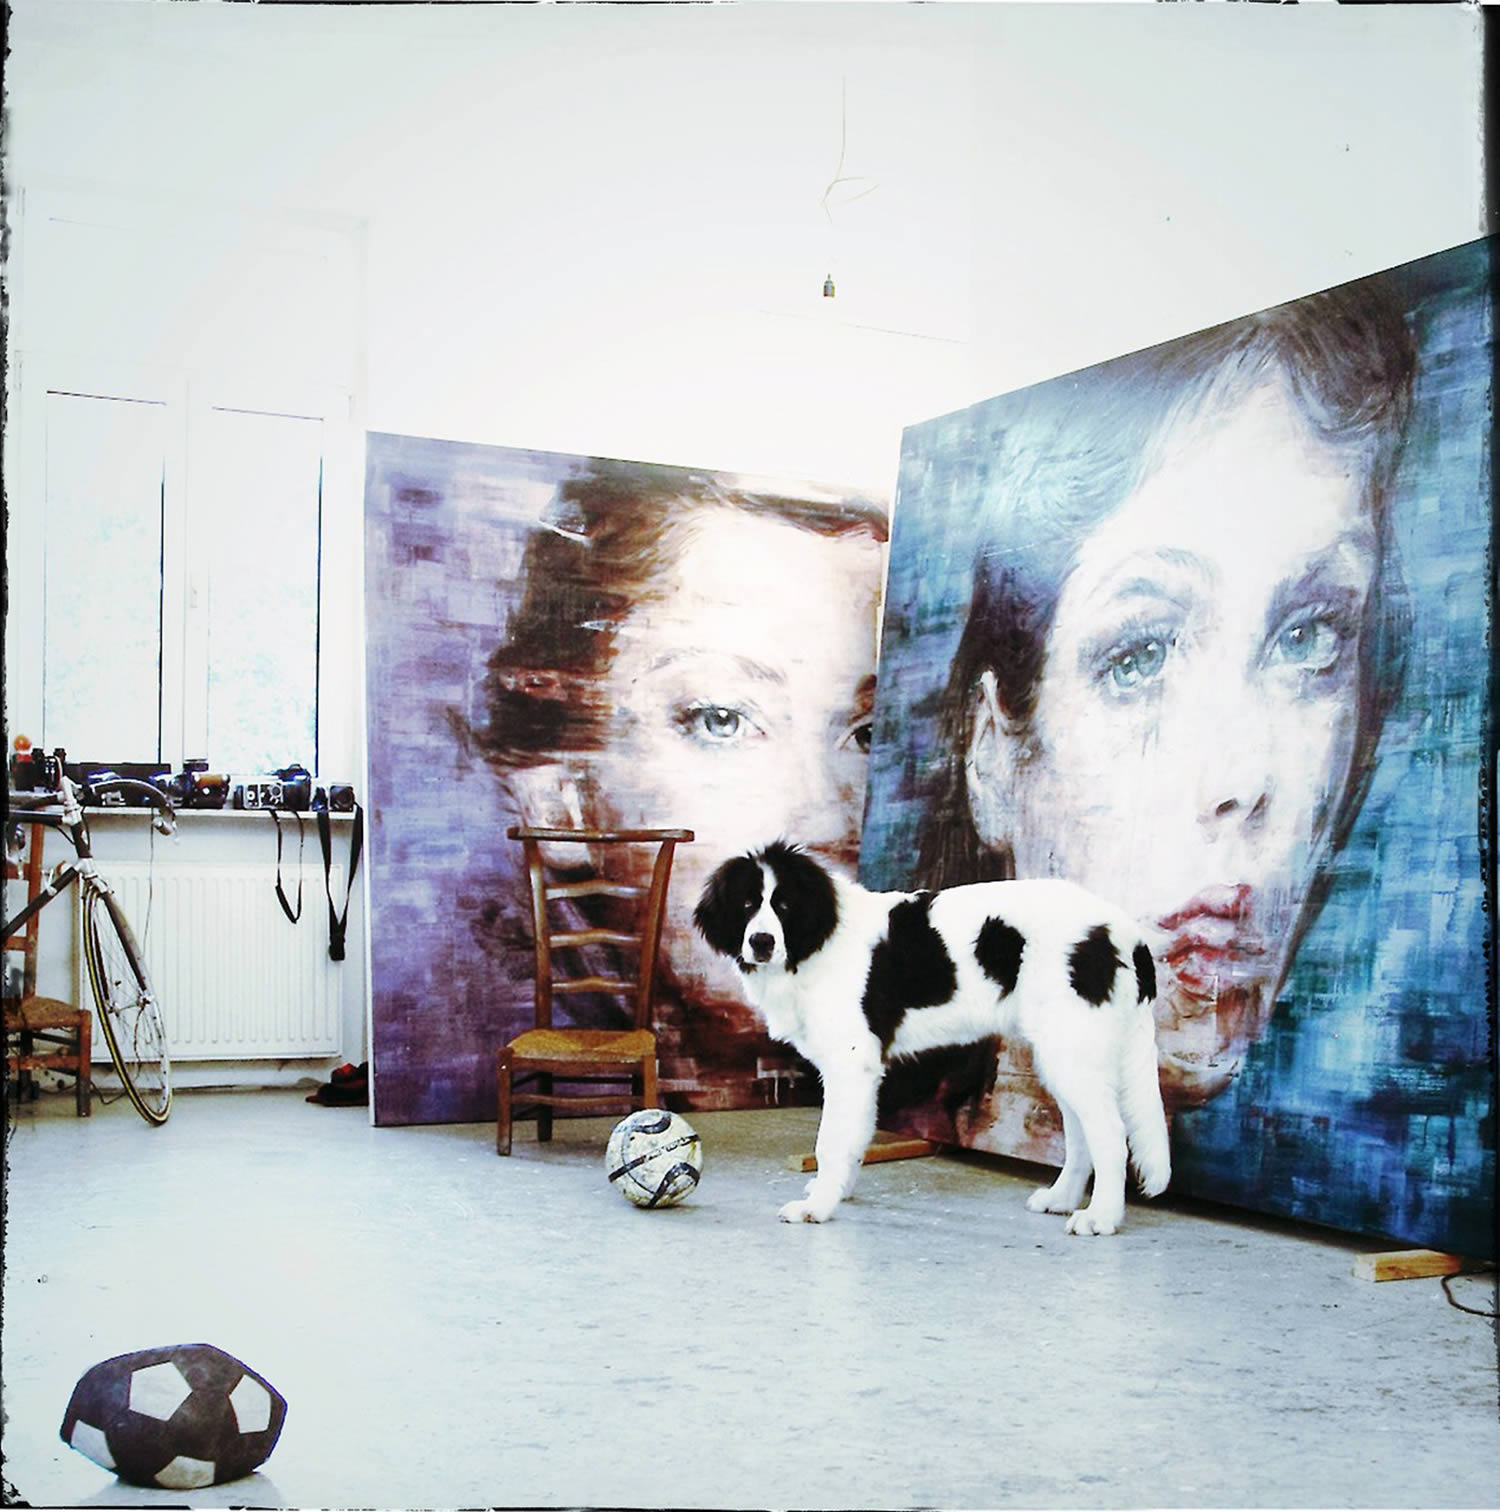 large-scale paintings in studio with artist's dog posing. Harding Meyer